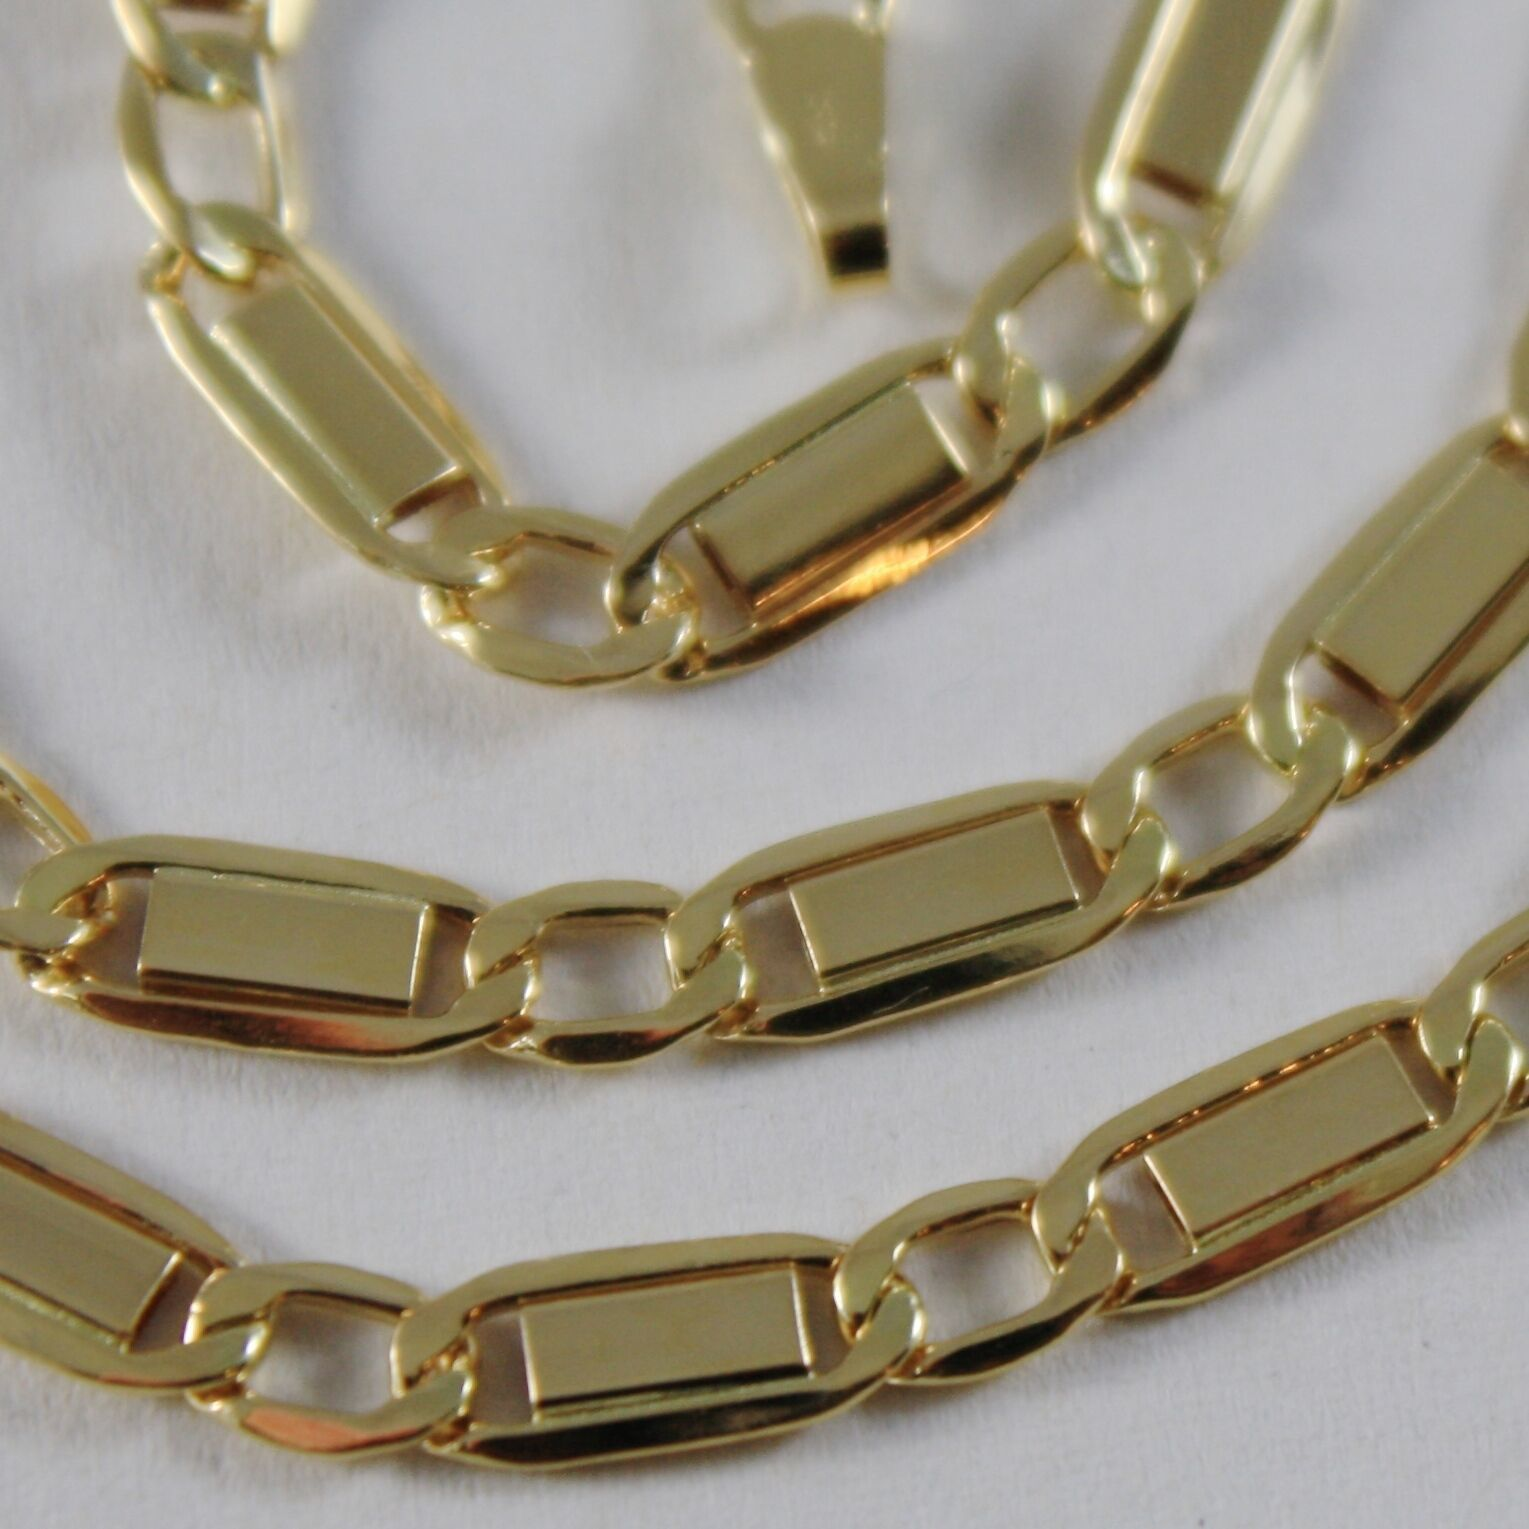 18K YELLOW GOLD CHAIN FLAT GOURMETTE ALTERNATE 4 MM OVAL LINK 15.7 MADE IN ITALY